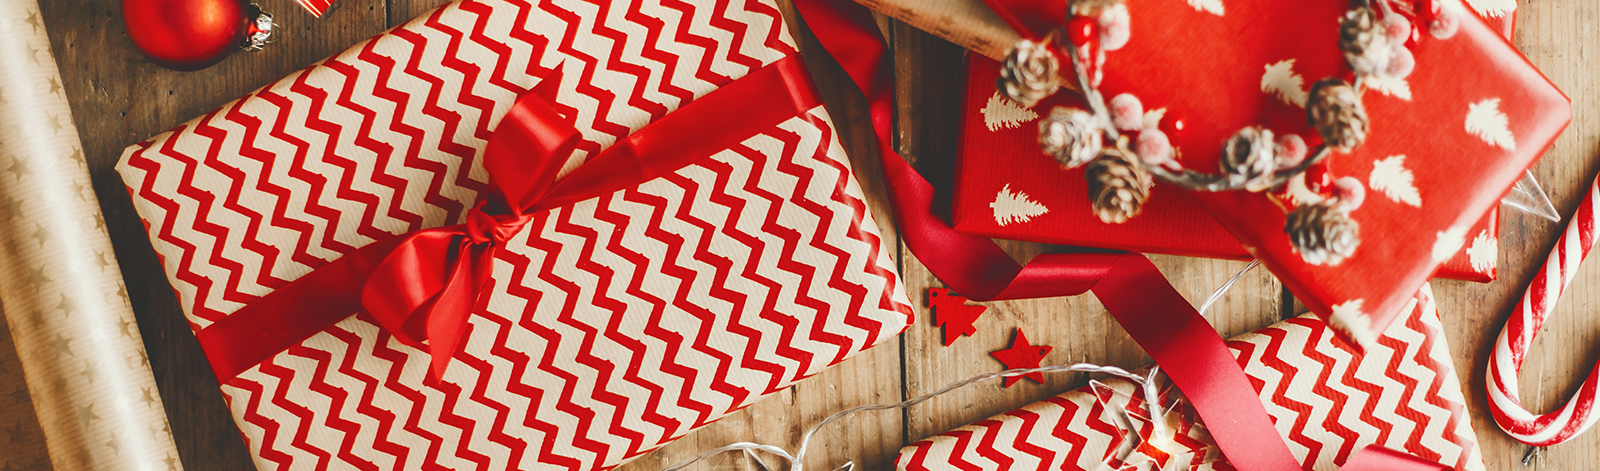 10 Coolest White Elephant Gifts